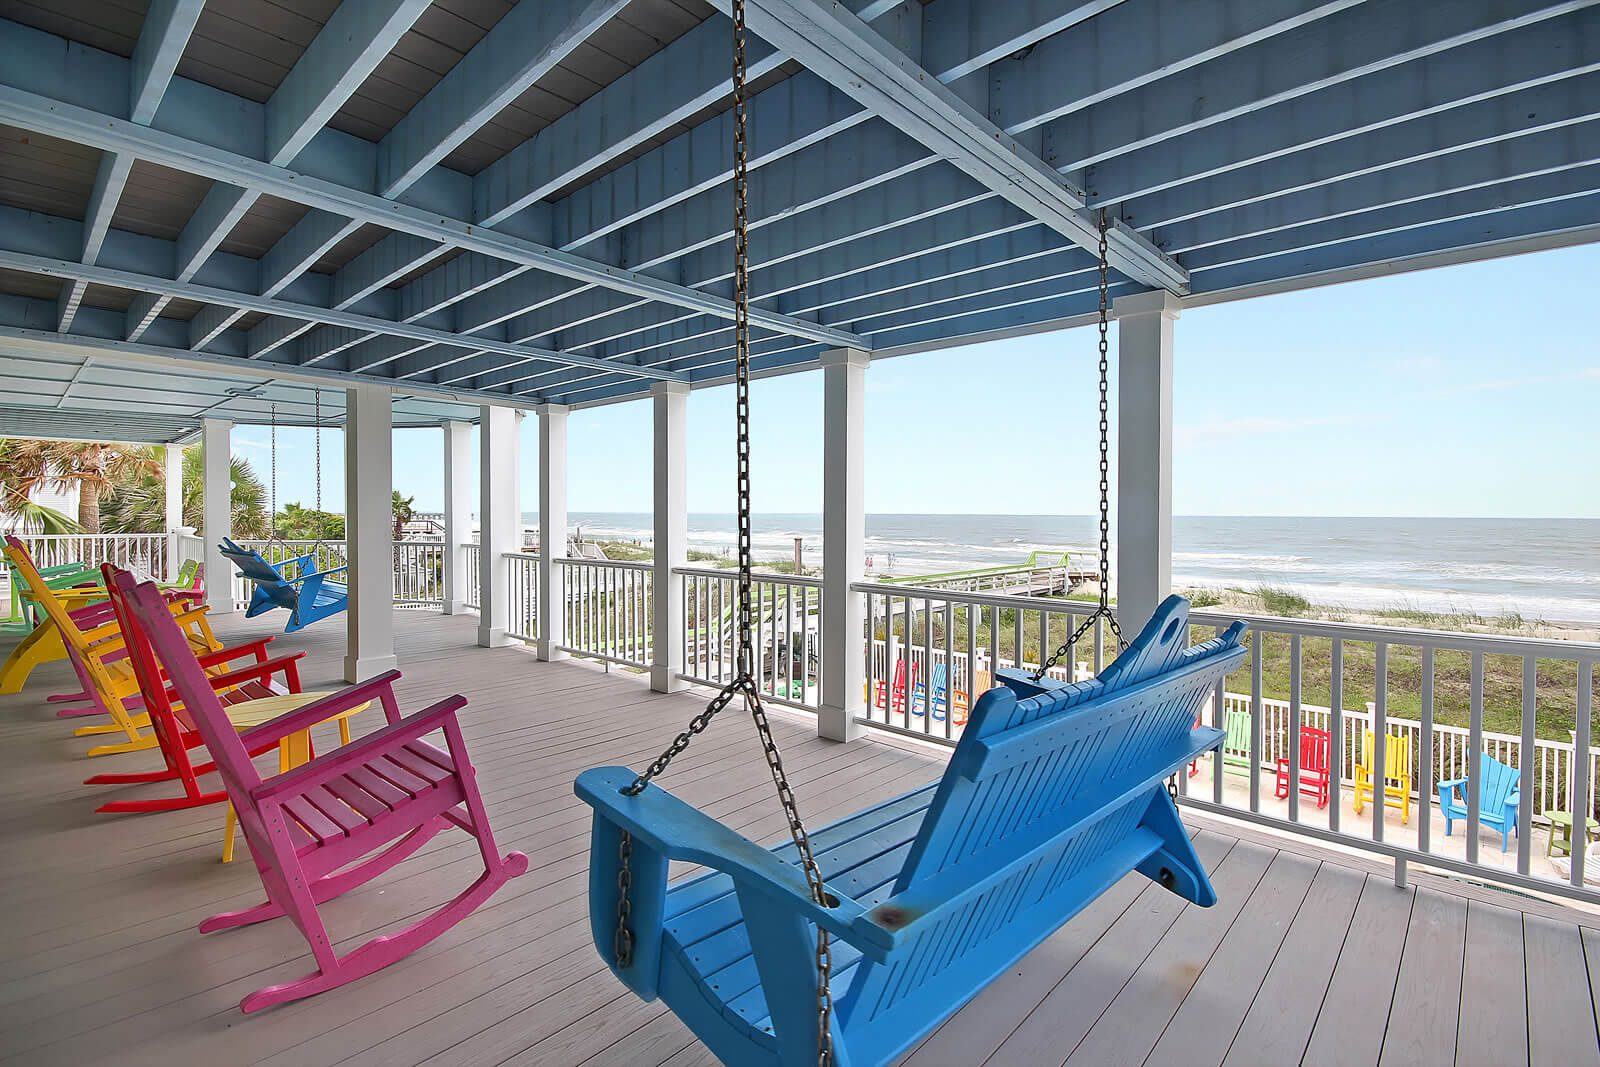 Casa Margarita Middle Deck - Isle of Palms, SC